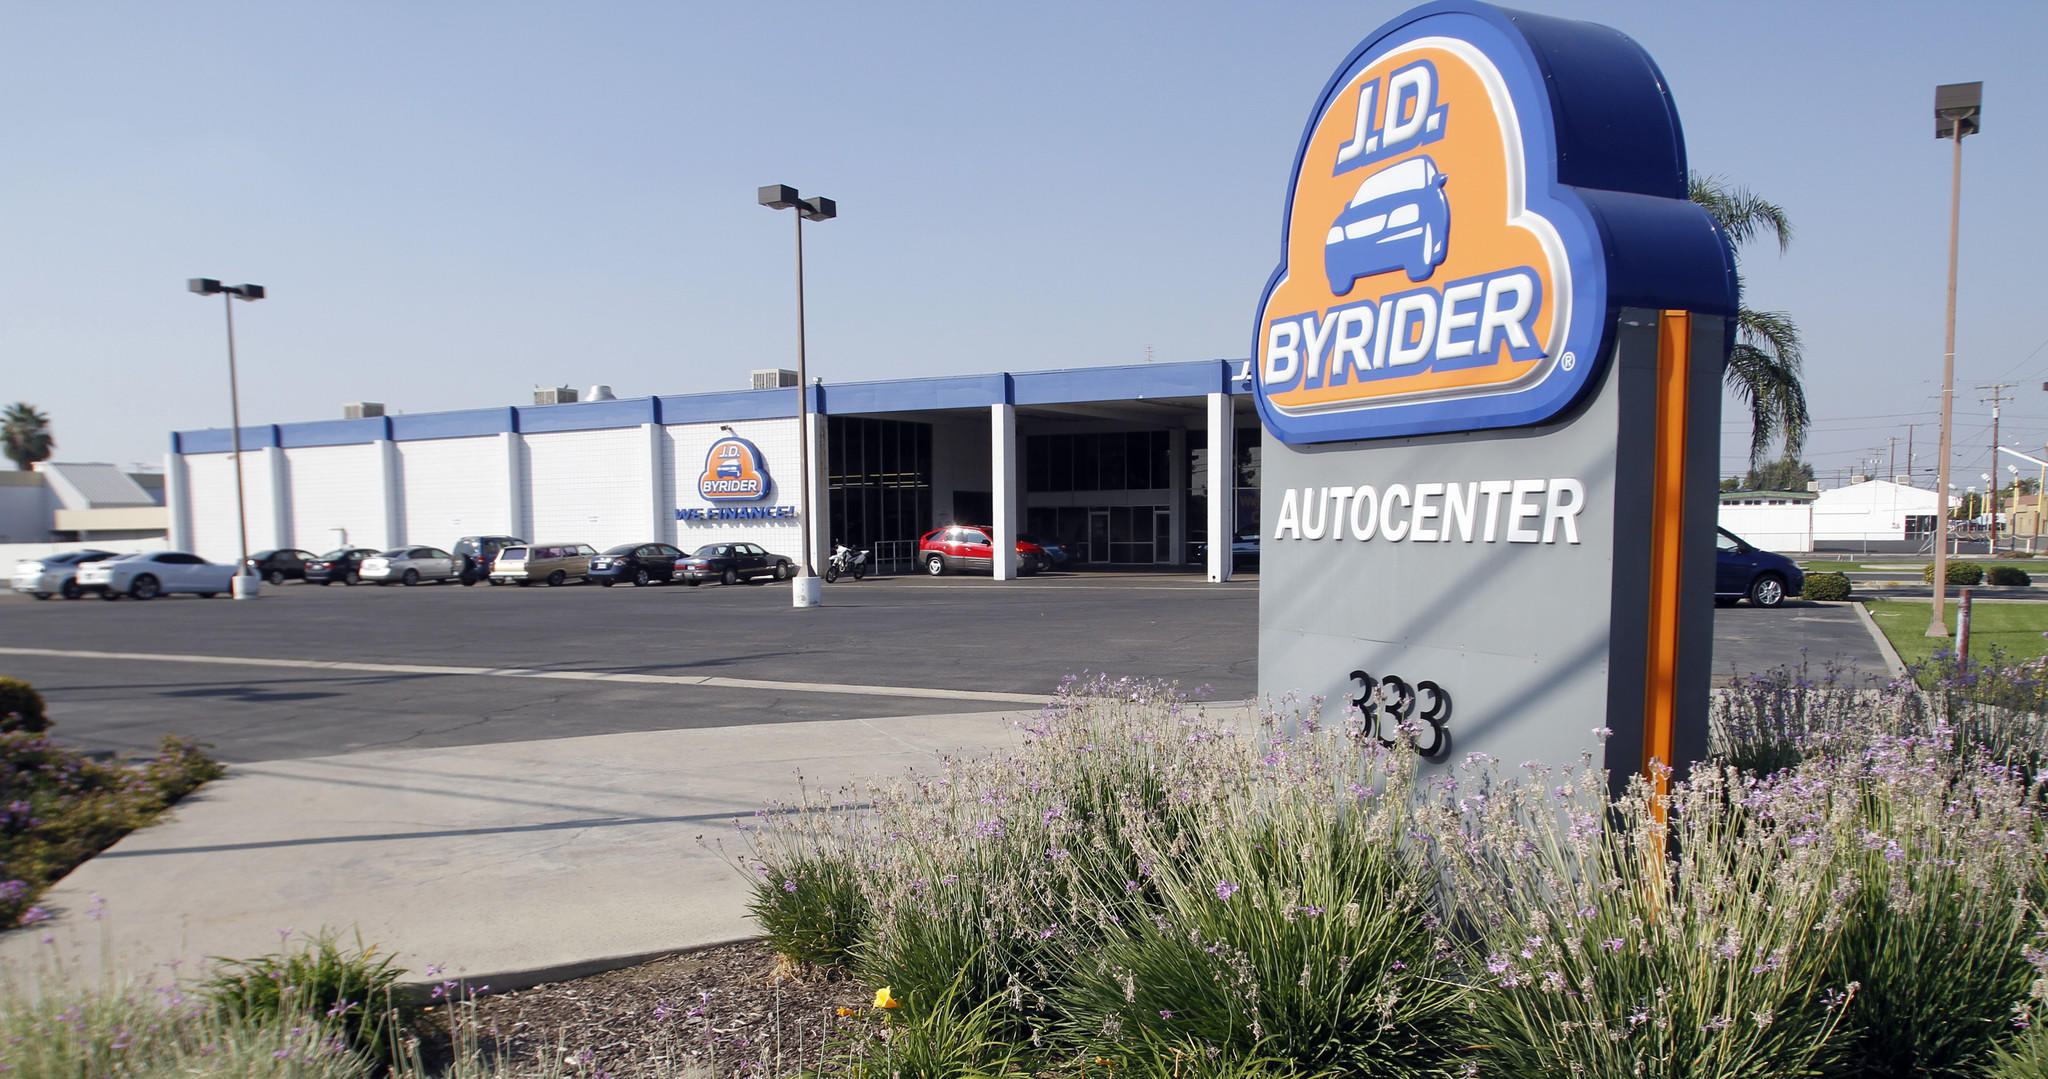 Jd Byrider Inventory 2018 2019 New Car Reviews By Wittsendcandy